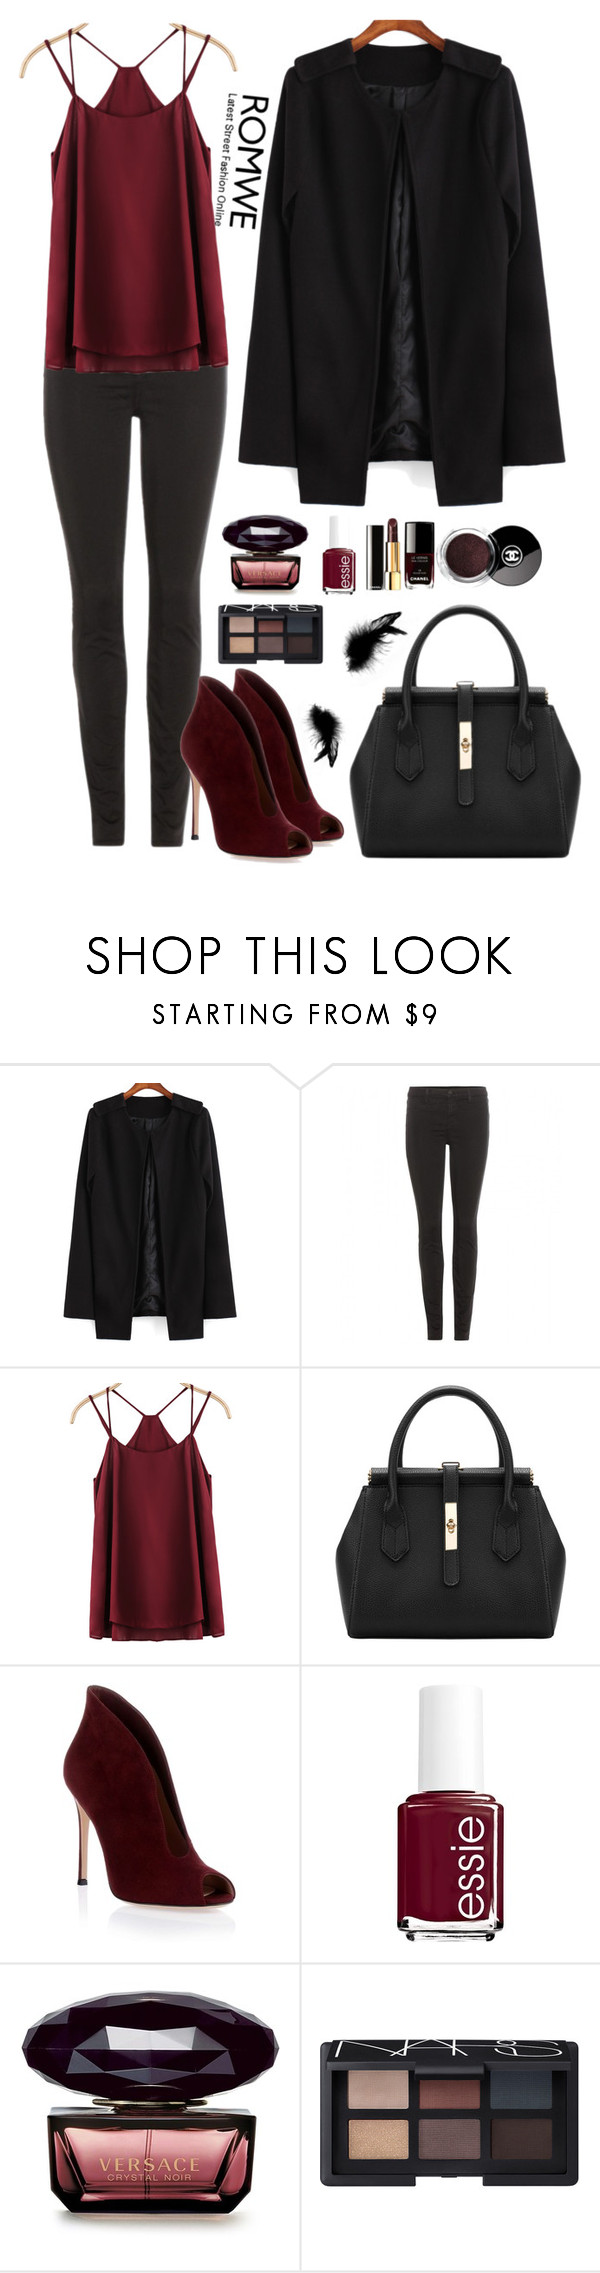 """""""Romwe 7"""" by amra-f ❤ liked on Polyvore featuring J Brand, Gianvito Rossi, Chanel, Essie, NARS Cosmetics, Fall, 1d, romwe and 5sos"""